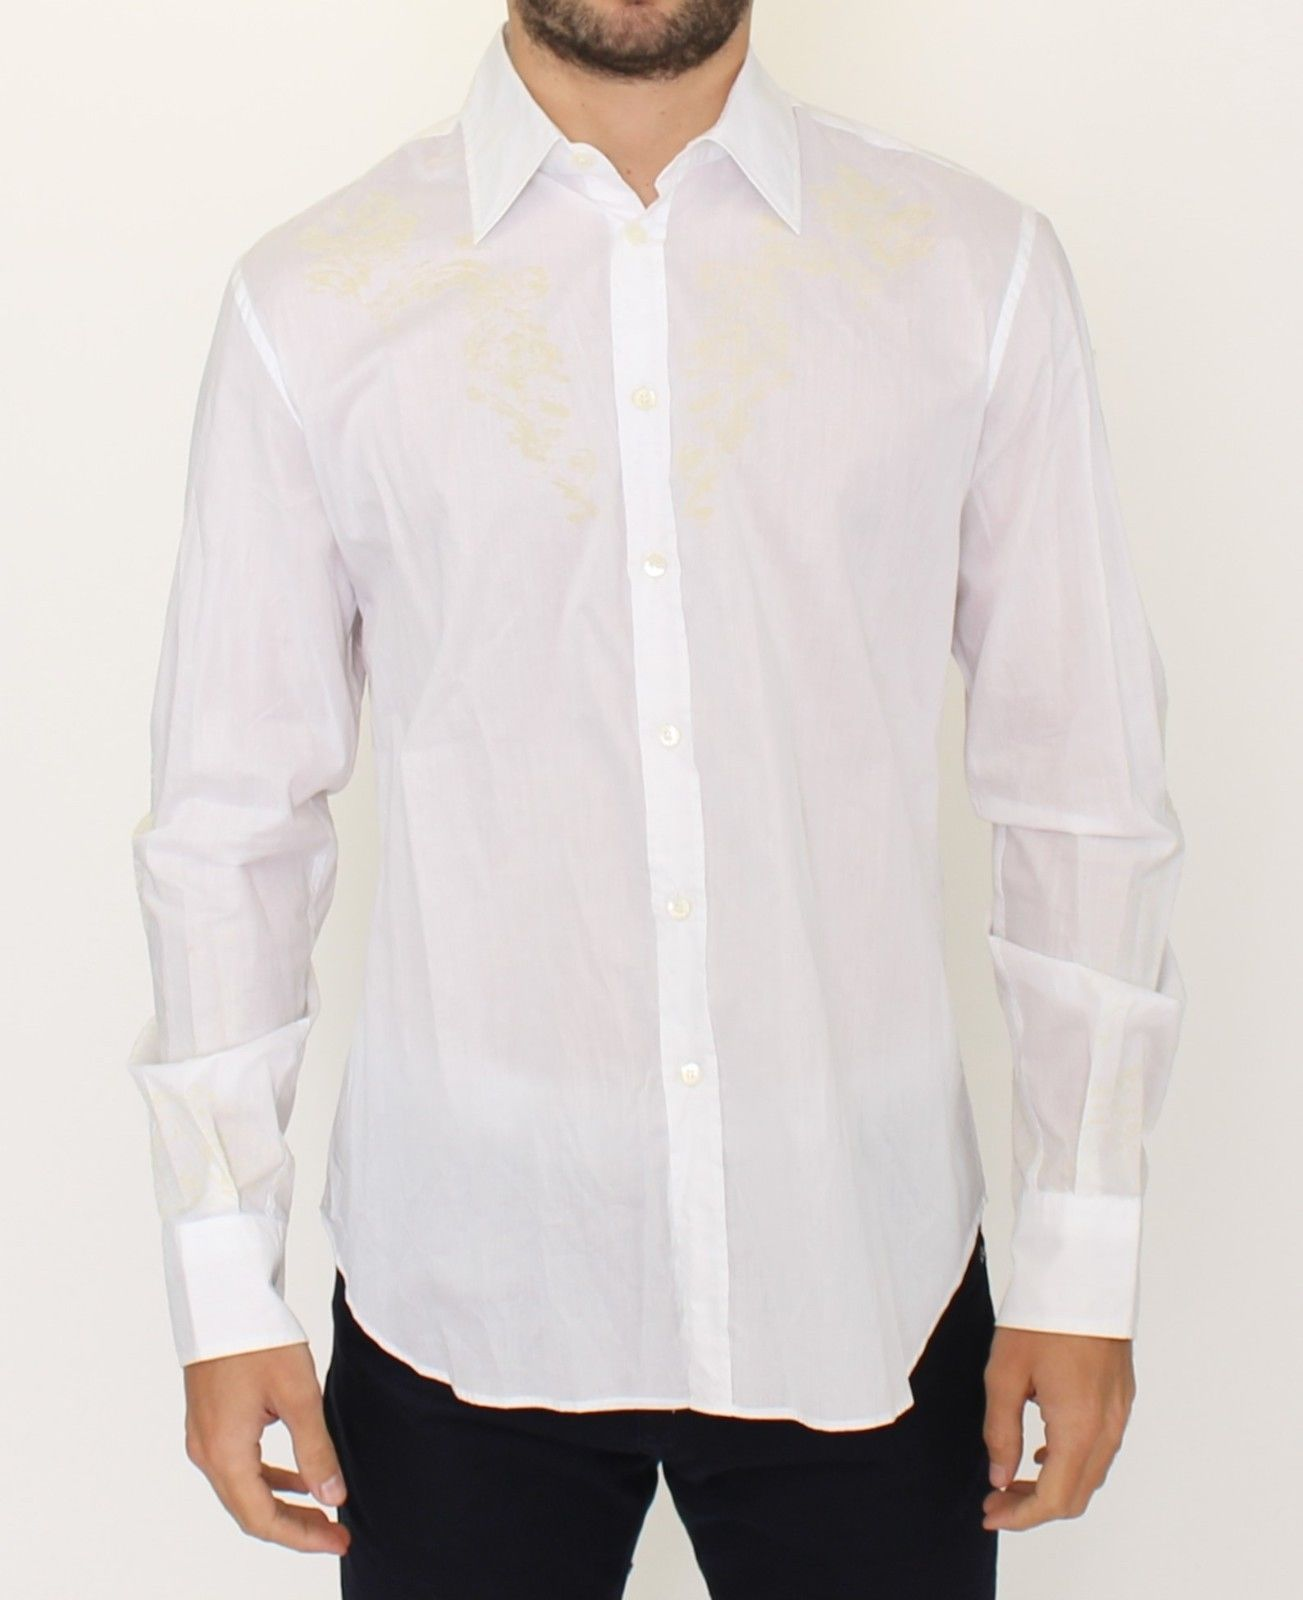 Ermanno Scervino White Cotton Long Sleeve Casual Shirt Top